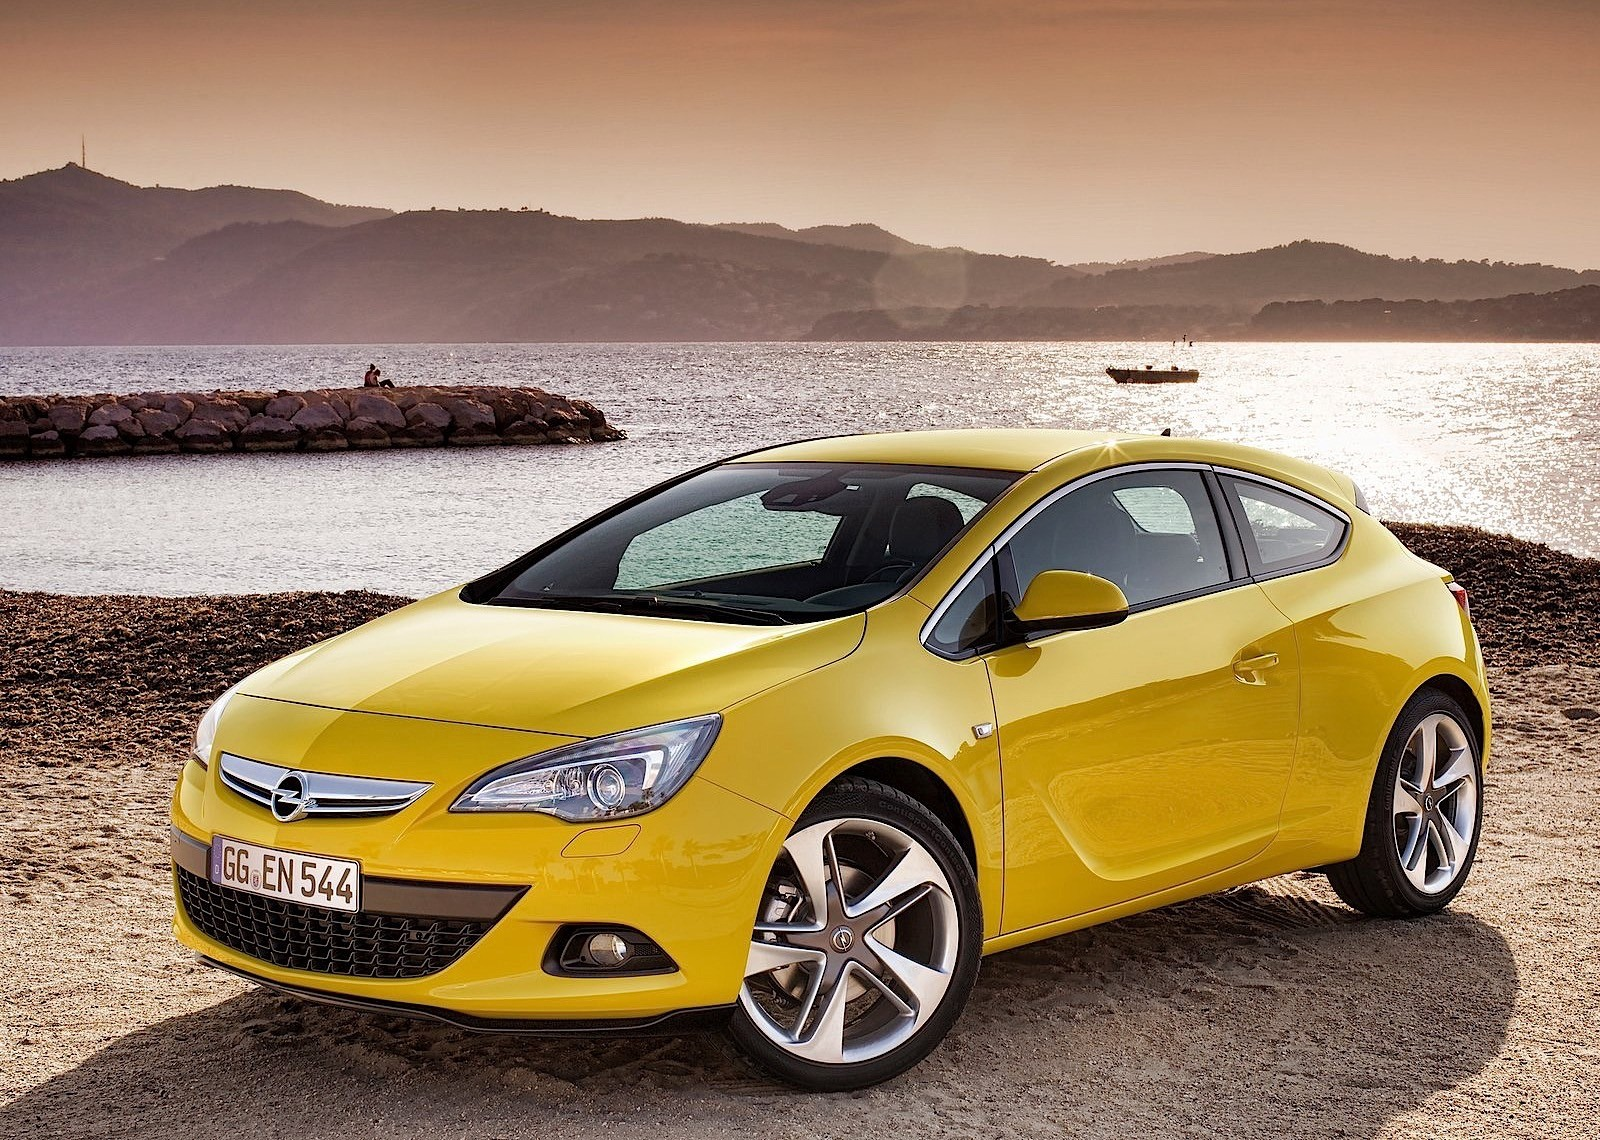 opel astra gtc specs 2011 2012 2013 2014 2015 2016 2017 2018 autoevolution. Black Bedroom Furniture Sets. Home Design Ideas